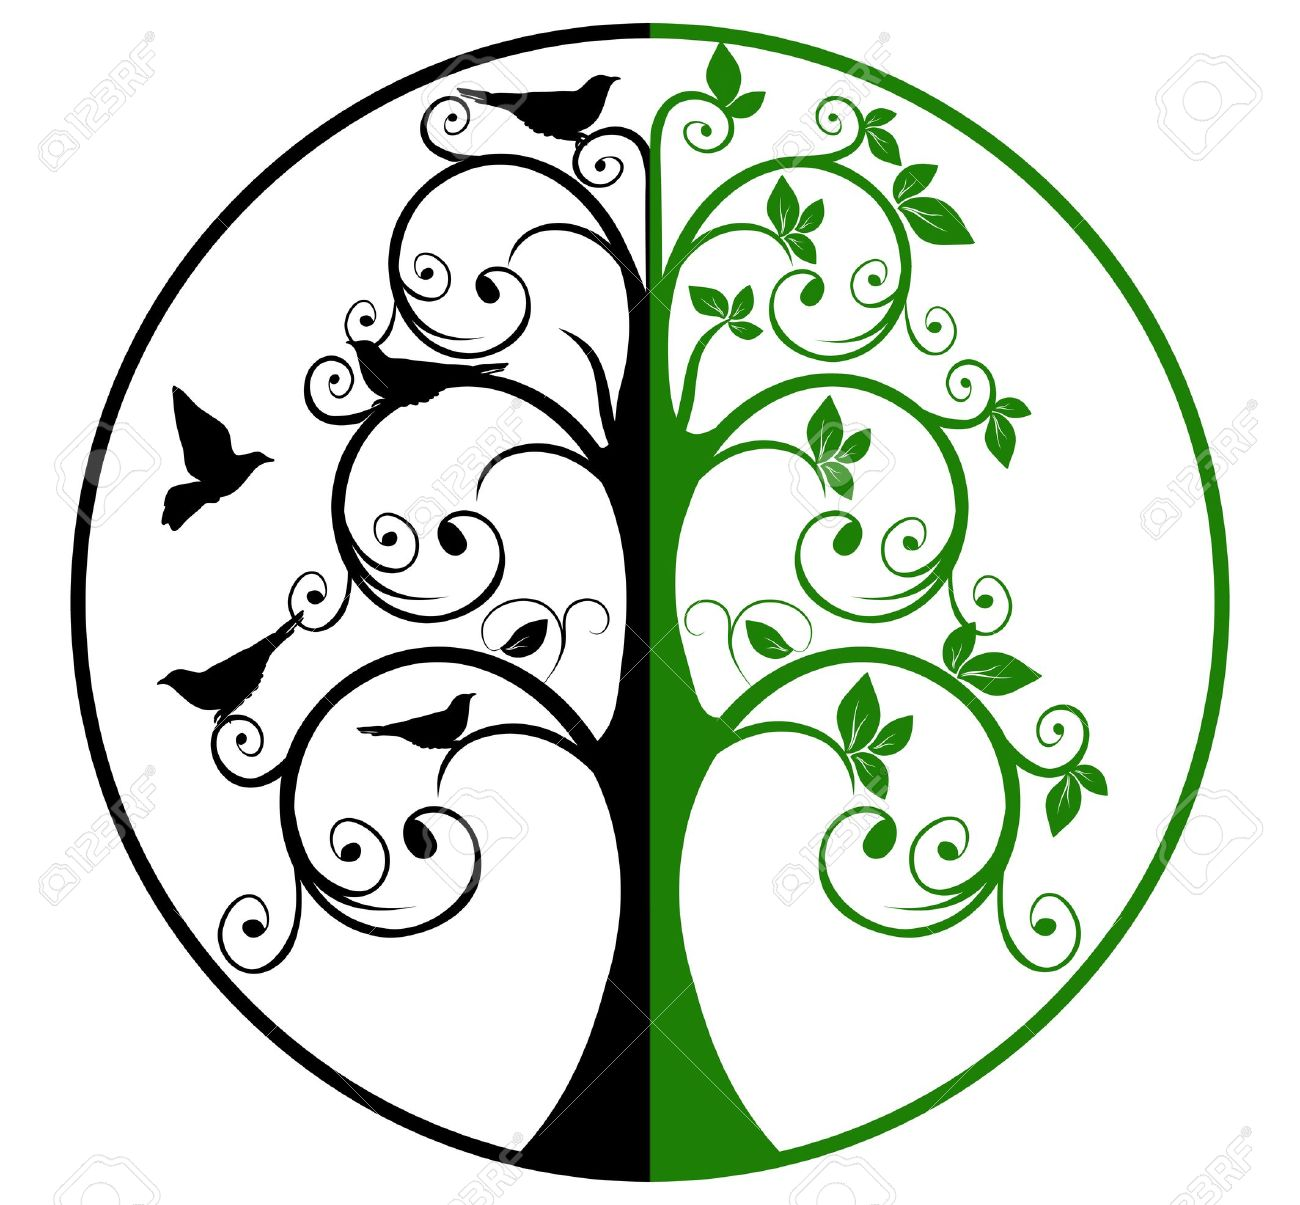 Tree Of Life And Death Royalty Free Cliparts Vectors And Stock Illustration Image 21075436 Clarence, sumo and jeff climb a tree to carve their names on it. tree of life and death